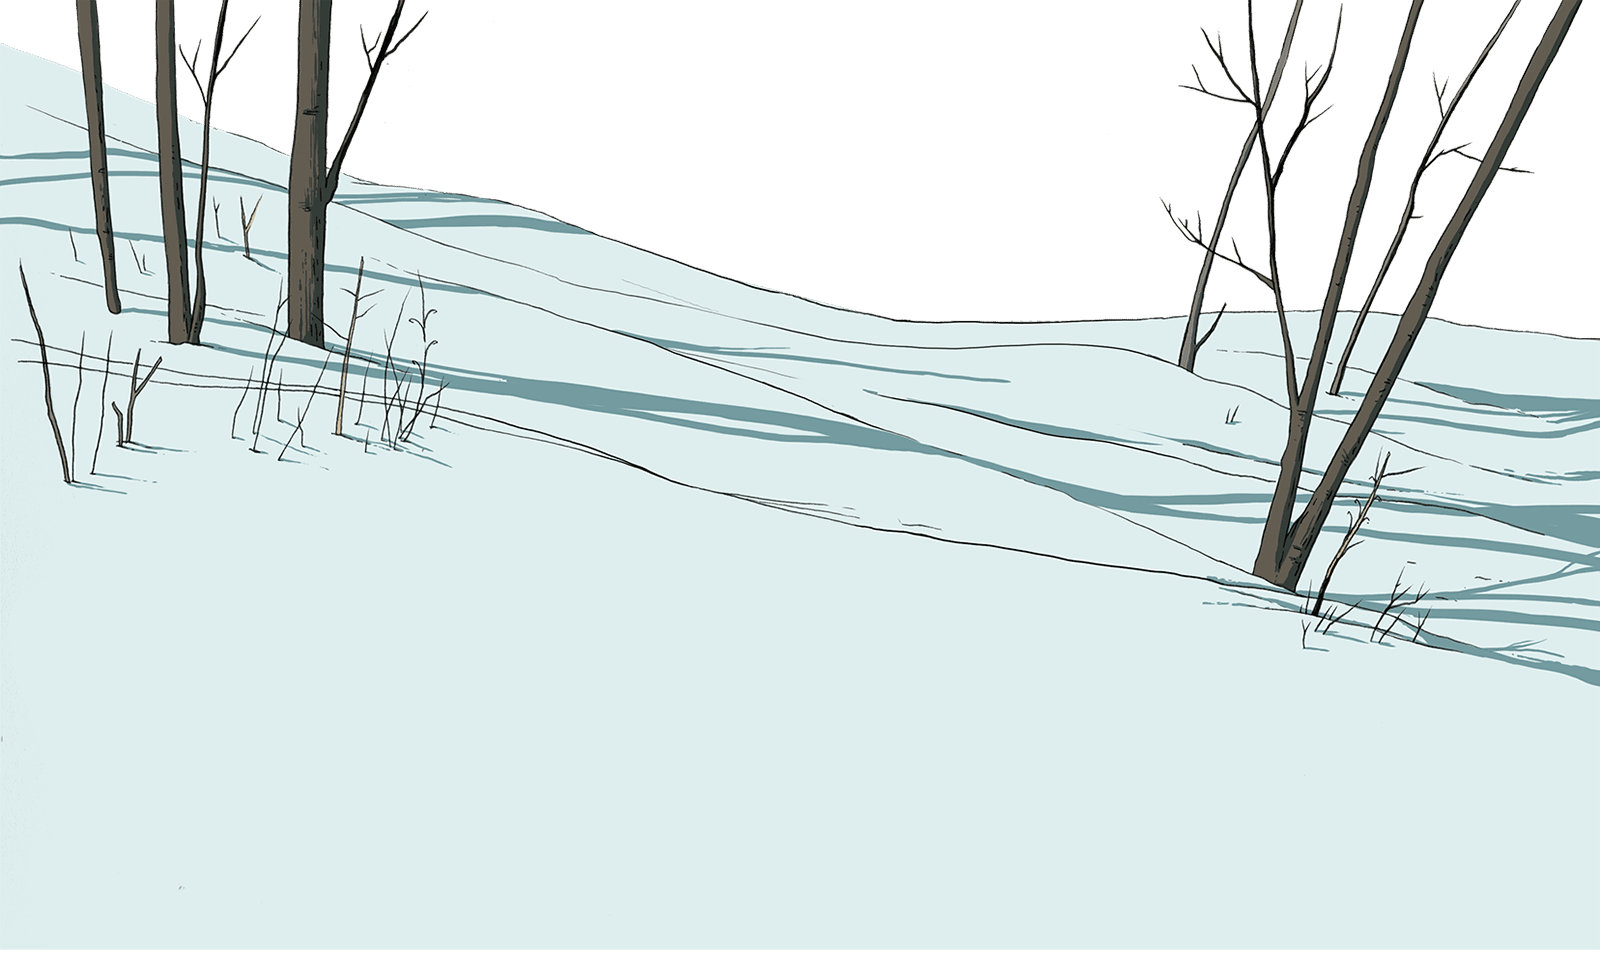 snow foreground with trees